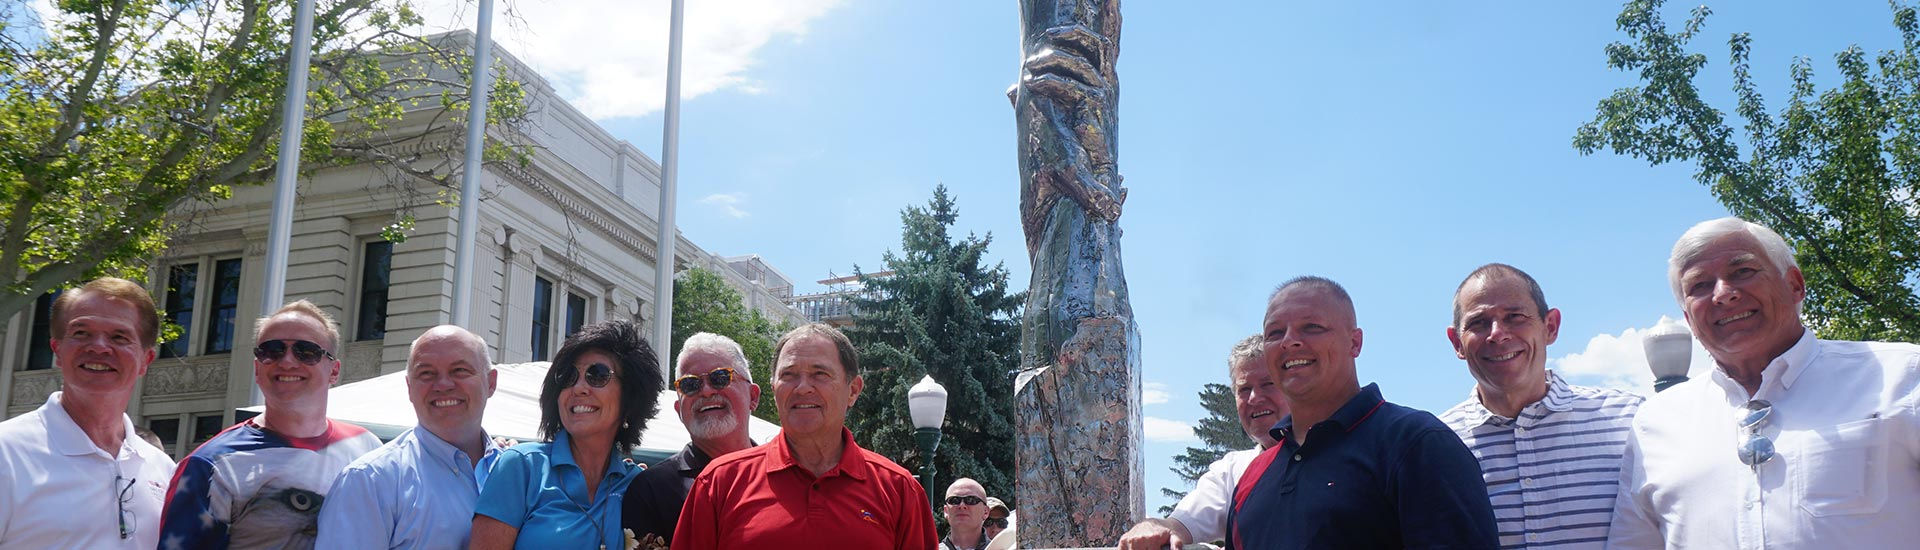 Statue of Responsibility Dedicated in Provo, UT on July 4th, 2016